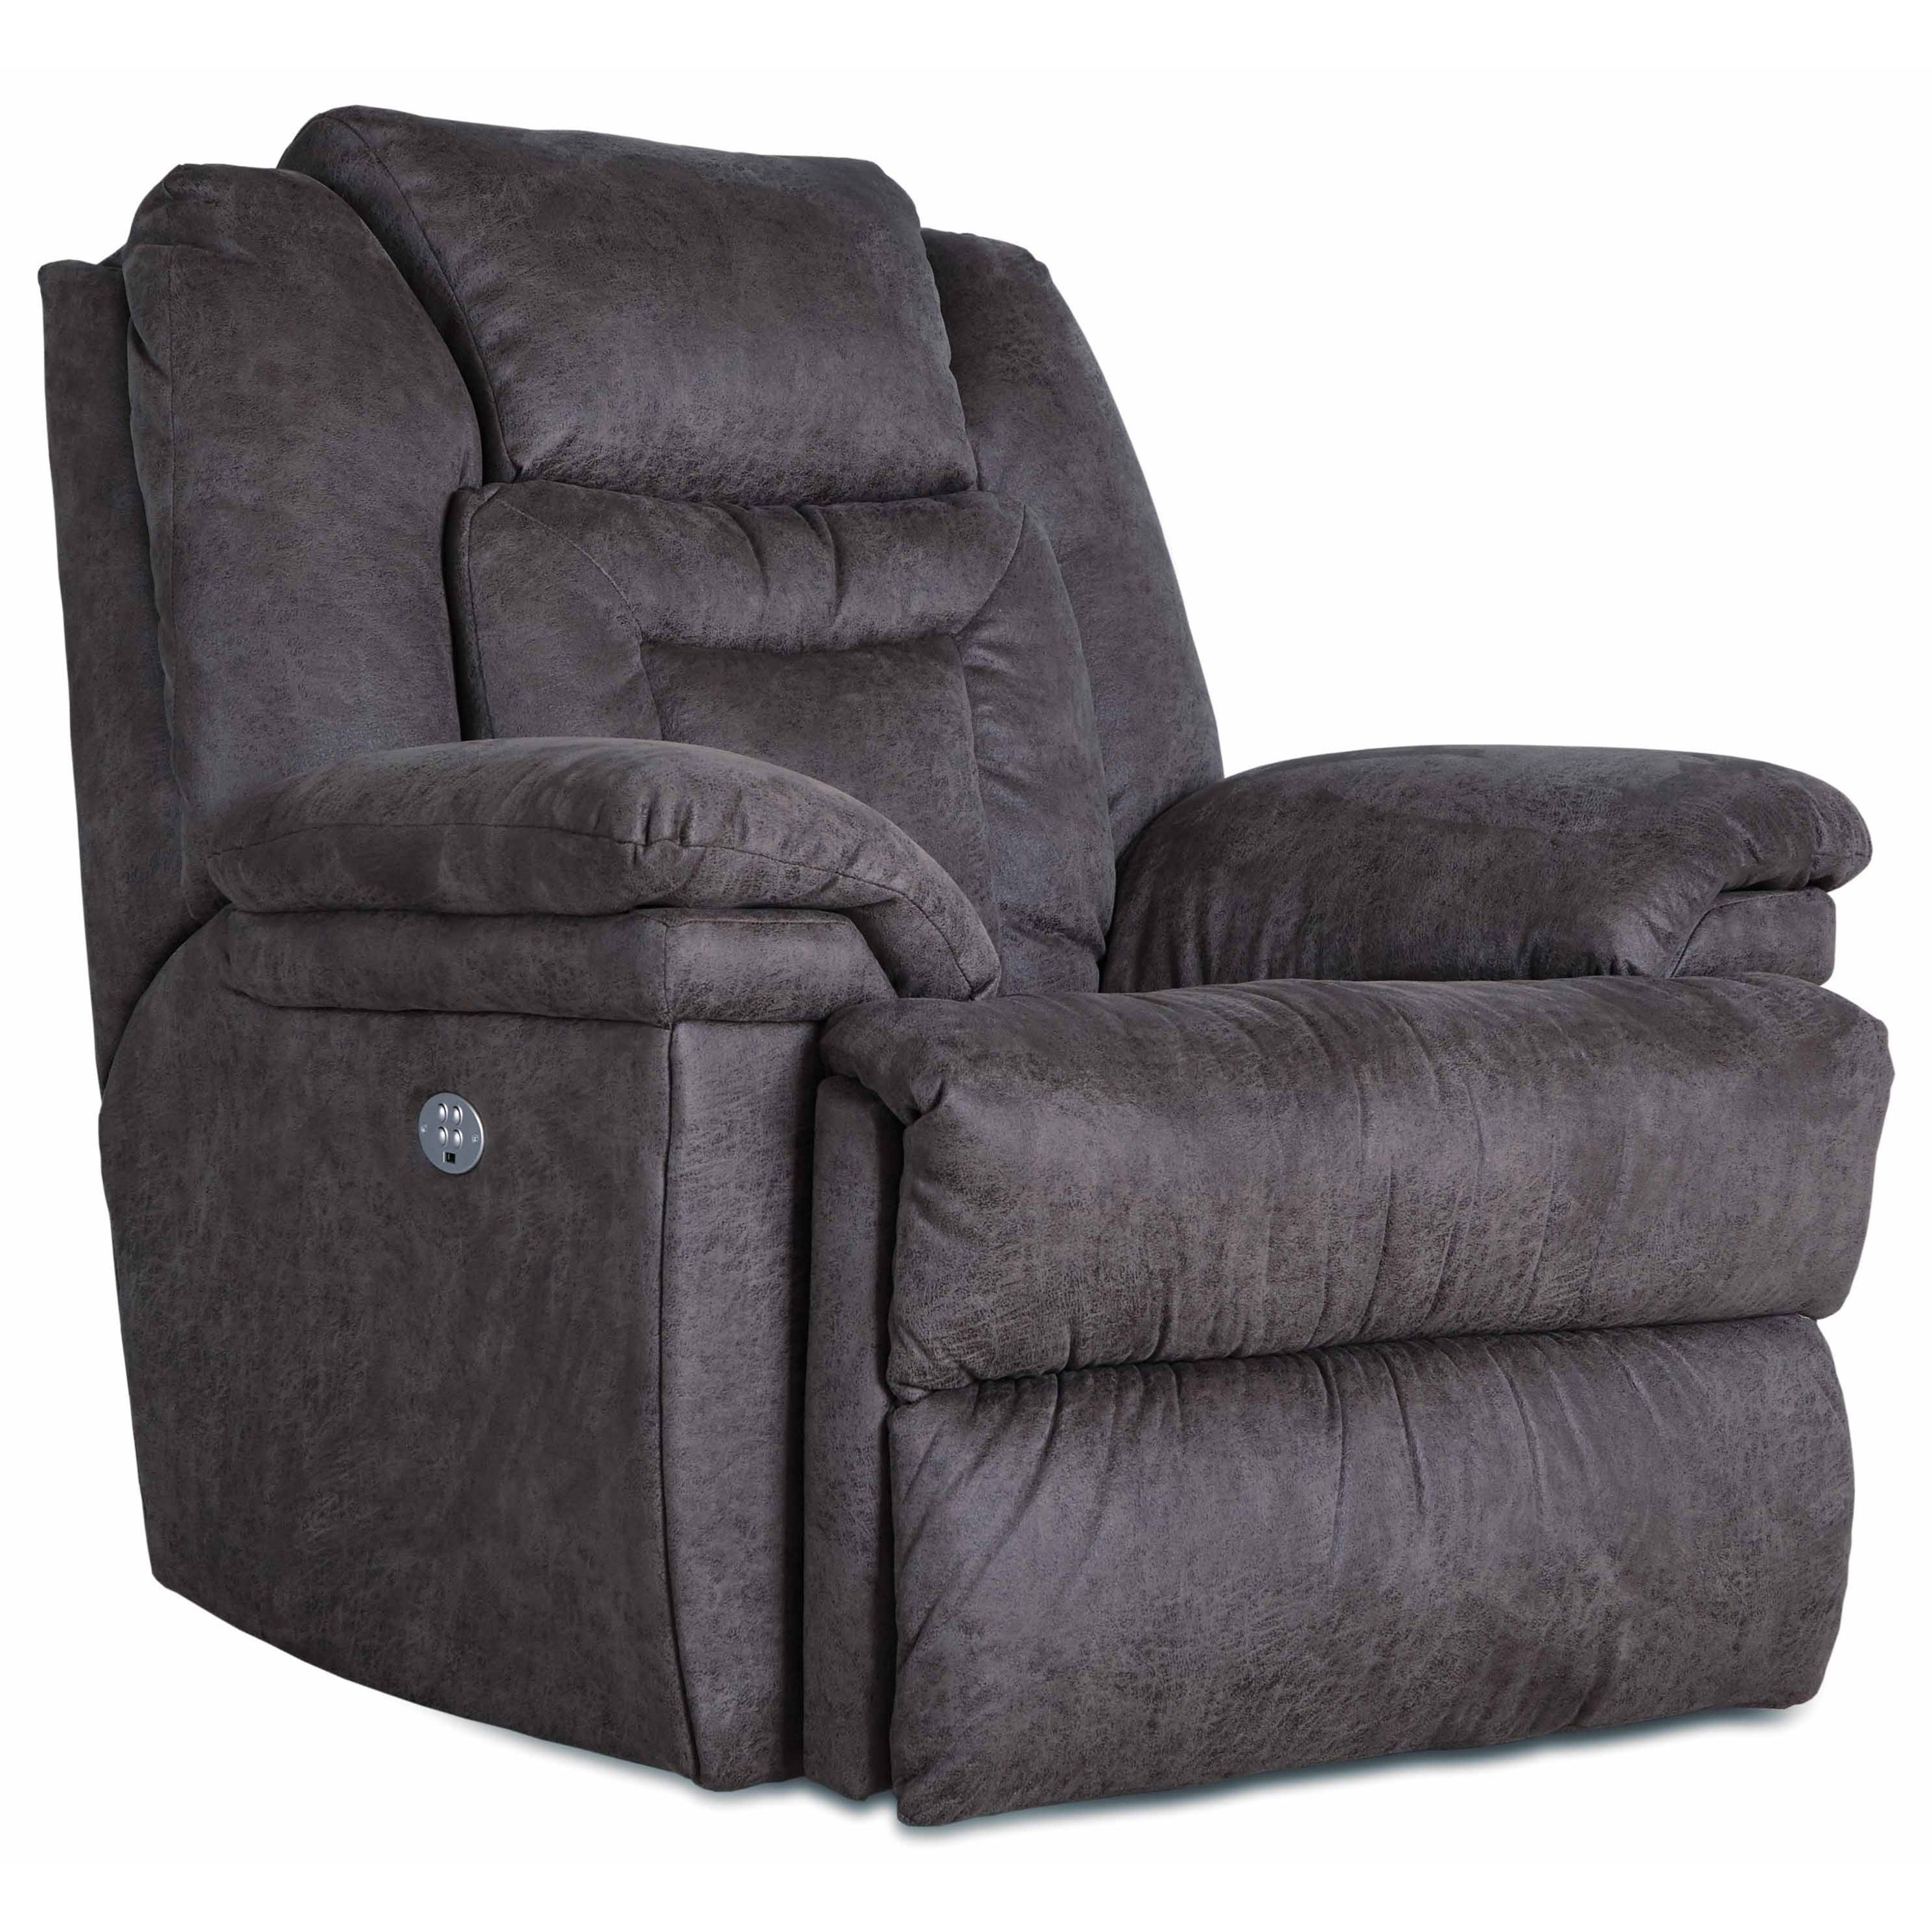 ideas boy home chair lazy tall for and sofa recliners big design man recliner mag things decorating